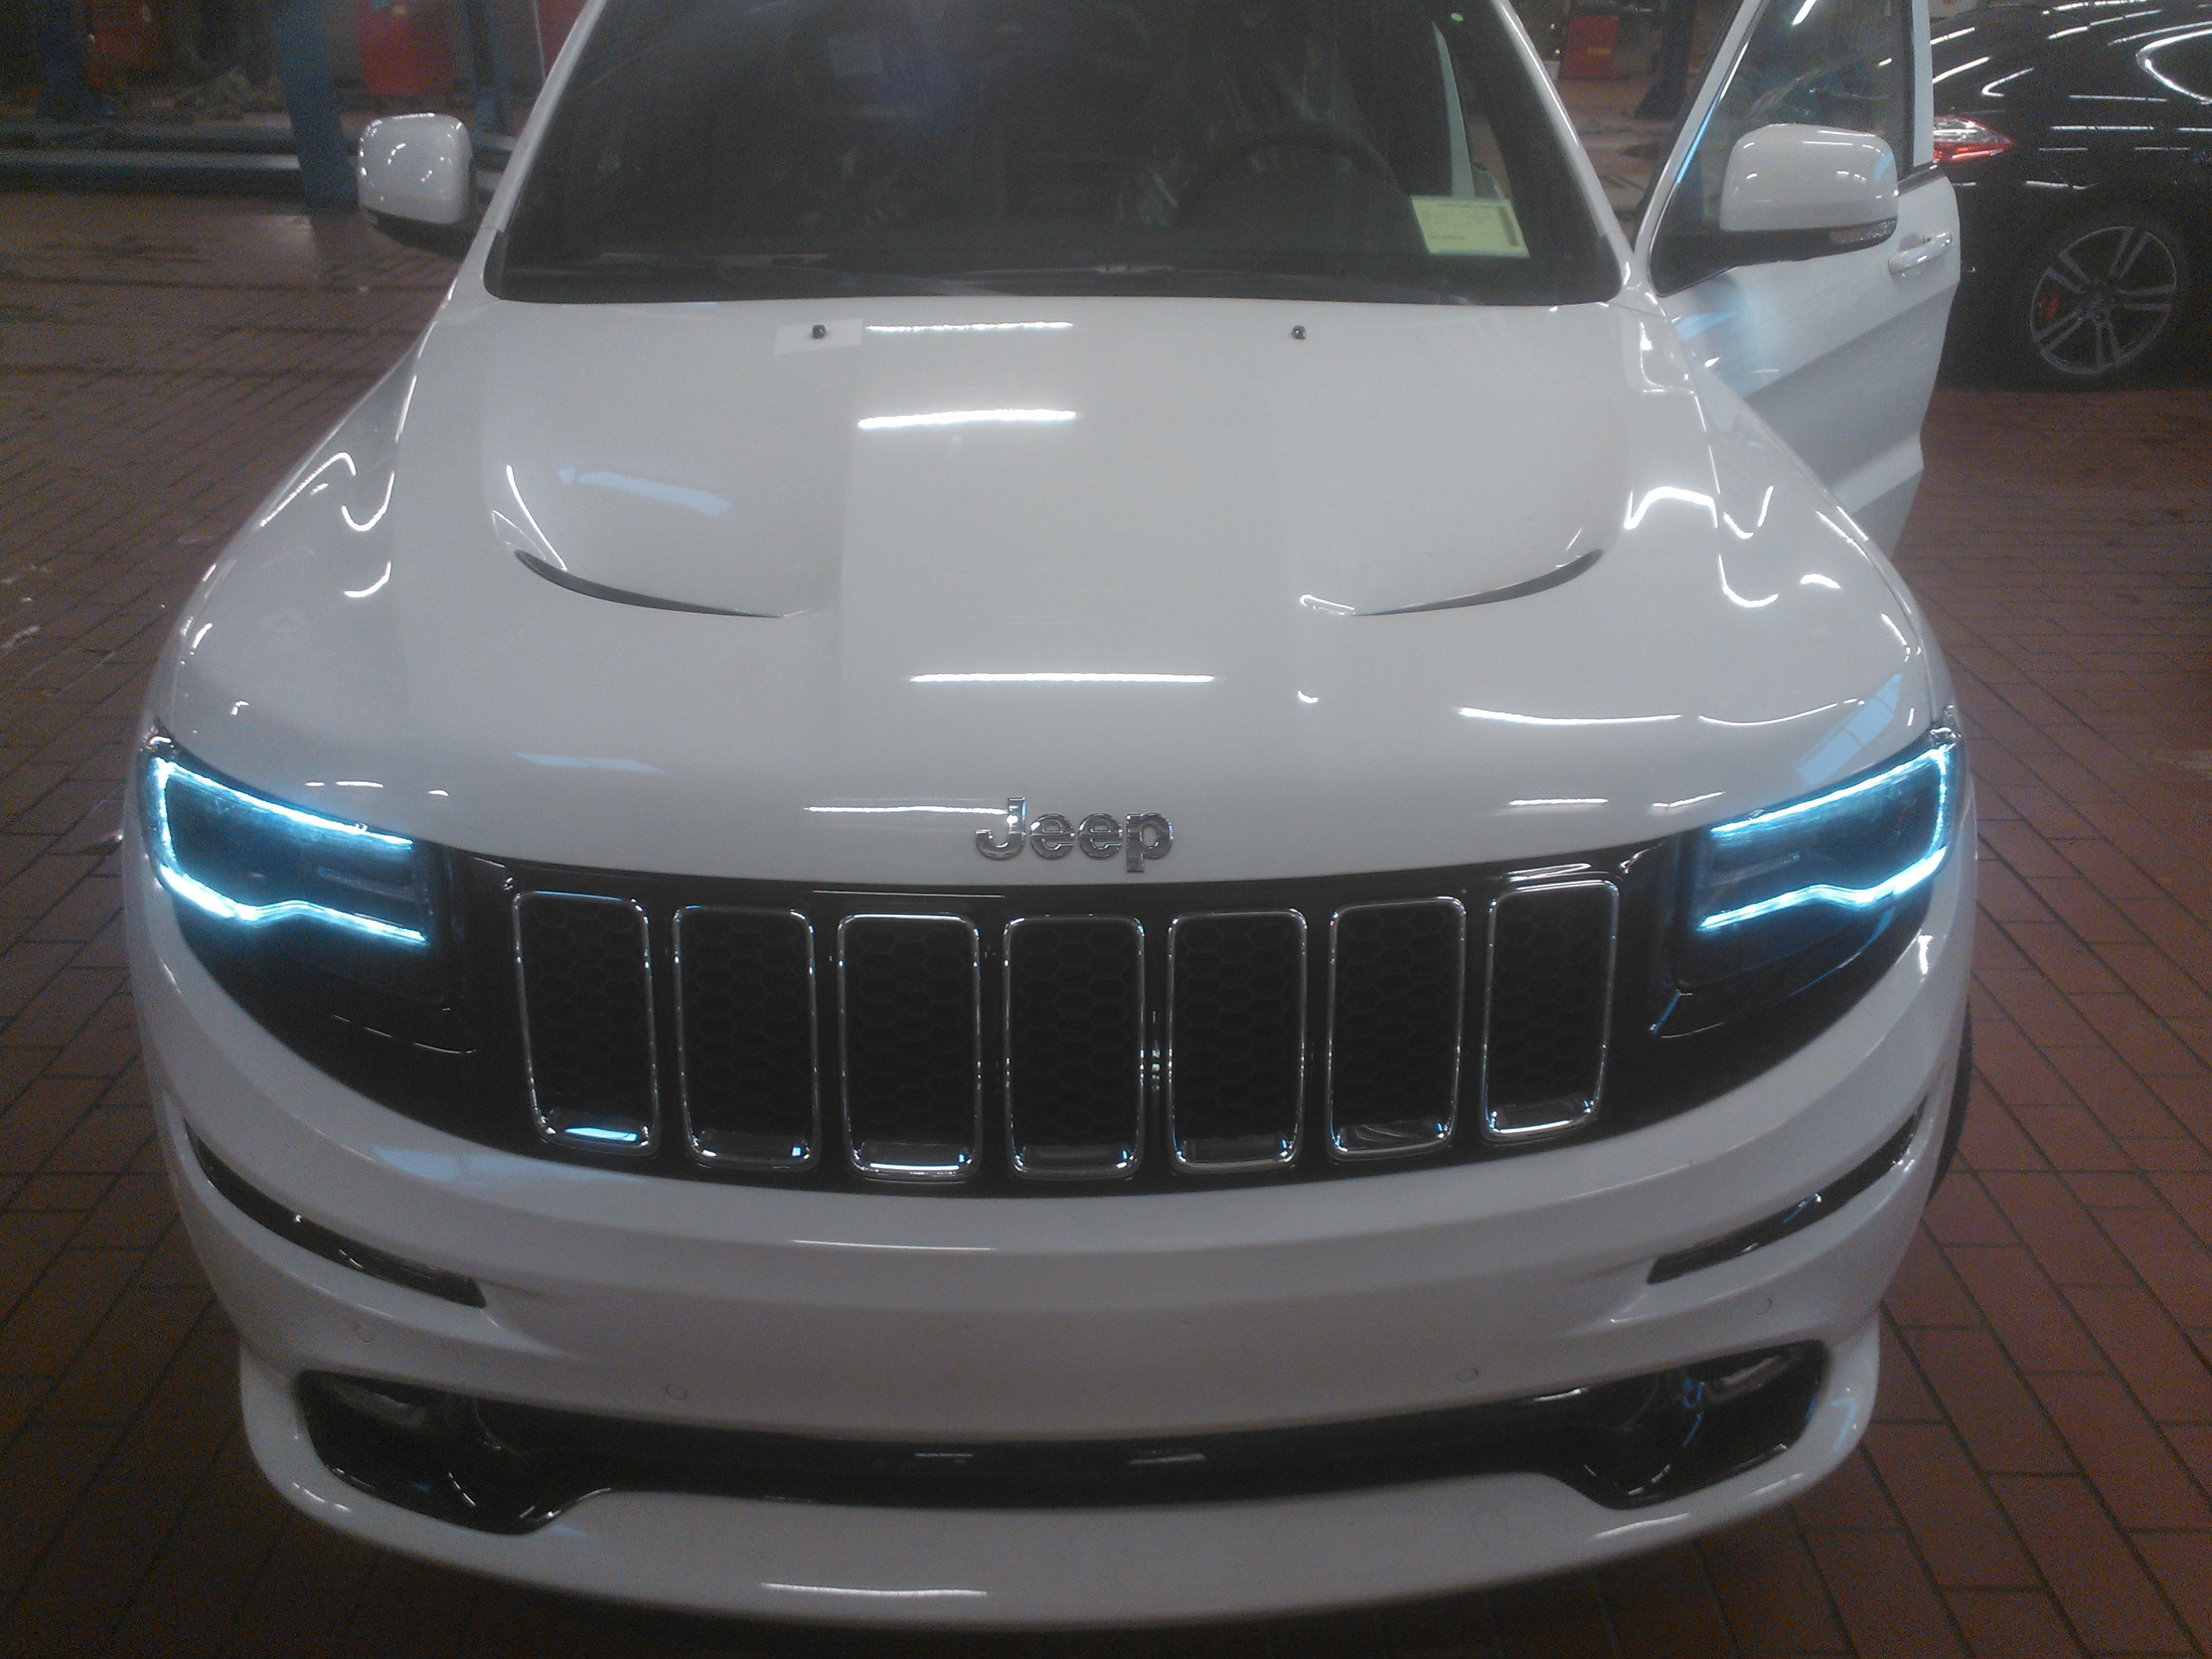 Markocz 2014 Jeep Grand Cherokee Specs, Photos ...